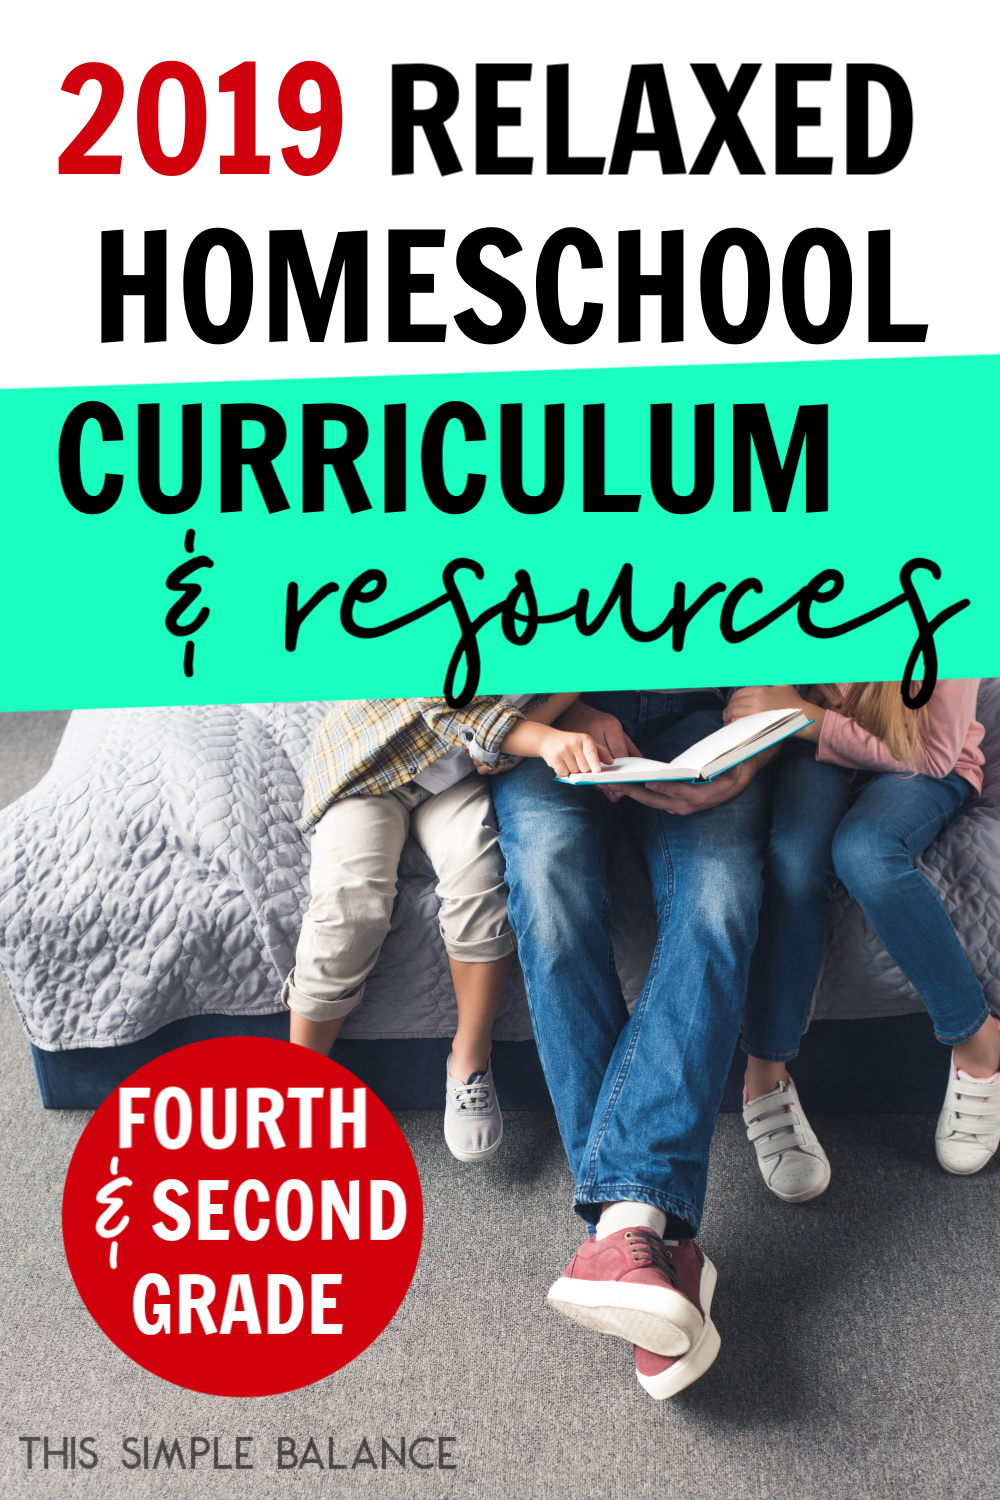 How to Homeschool 4th Grade: Curriculum & Resources for 2019